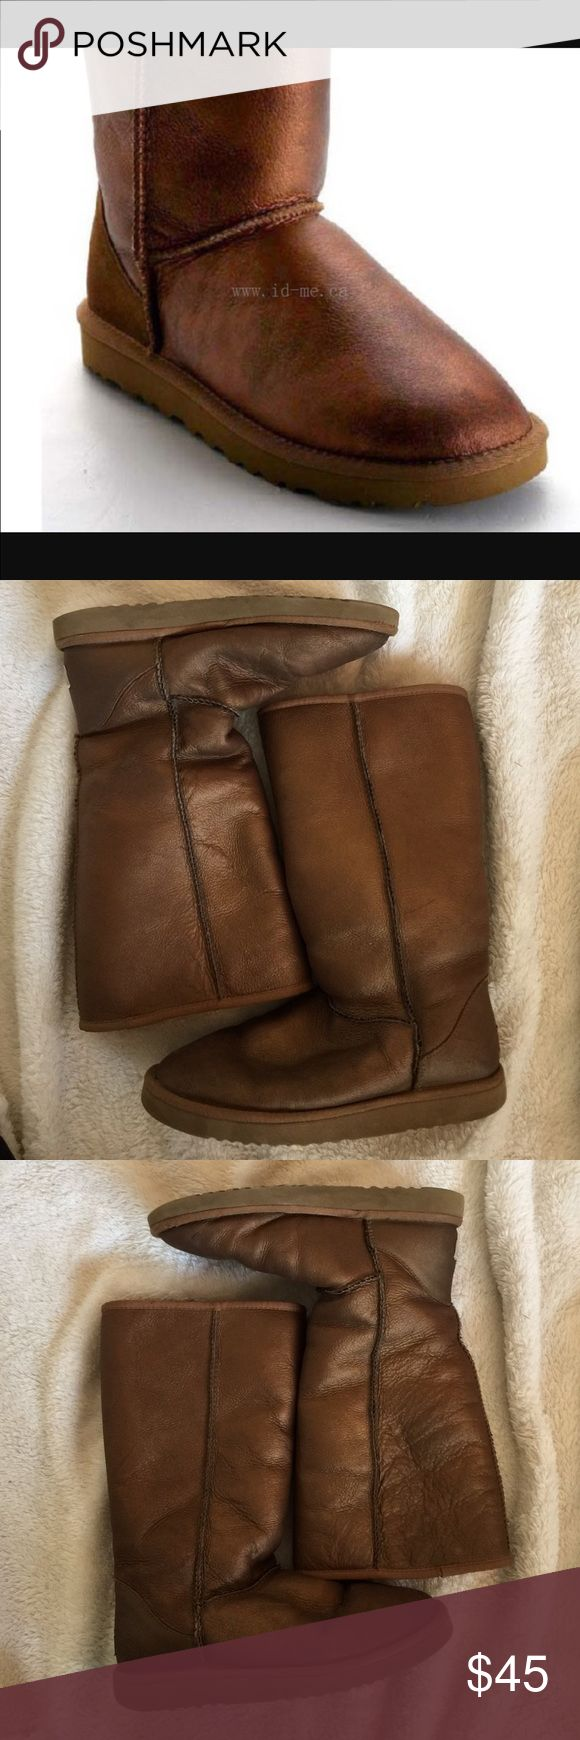 Copper metallic UGG boots These have been worn so there are a couple spots where the metallic is faded and they do show signs of wear if you would like more pictures please just ask they are super cute and great for fall very shiny bundle for a better price! UGG Shoes Winter & Rain Boots